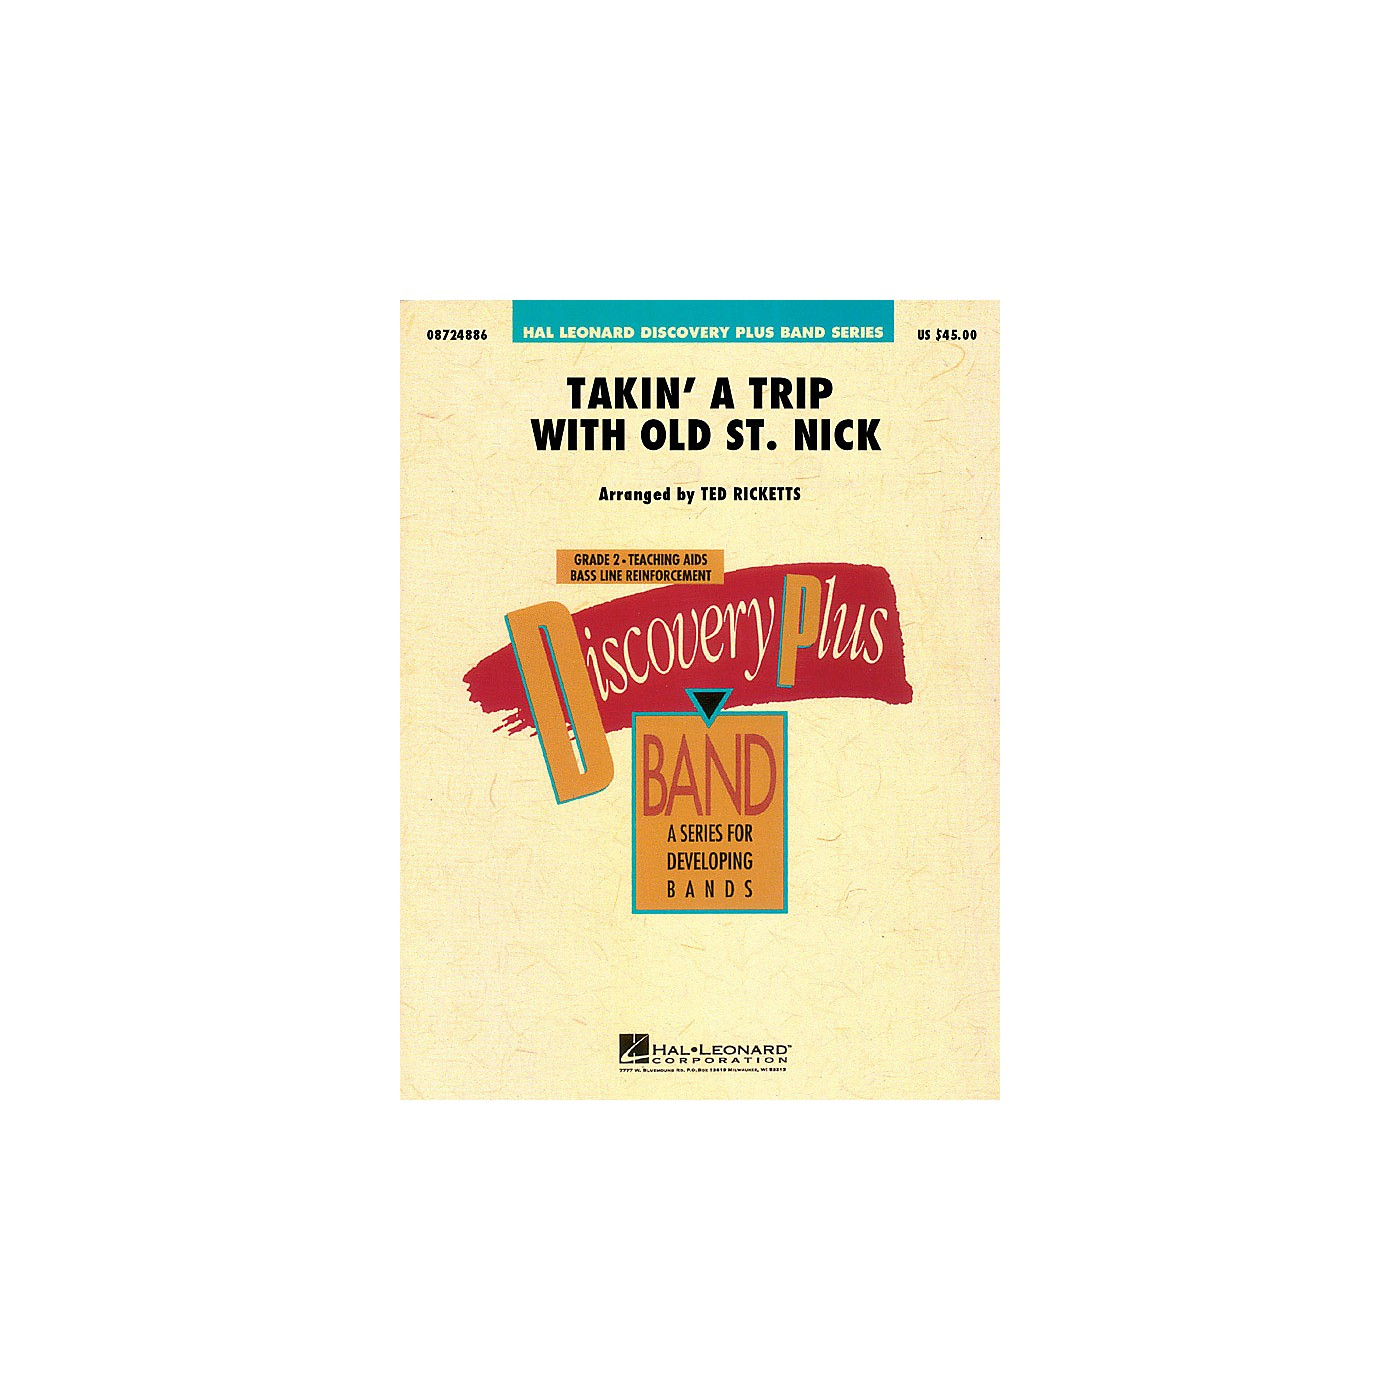 Hal Leonard Takin' a Trip with Old St. Nick - Discovery Plus Concert Band Series Level 2 arranged by Ted Ricketts thumbnail